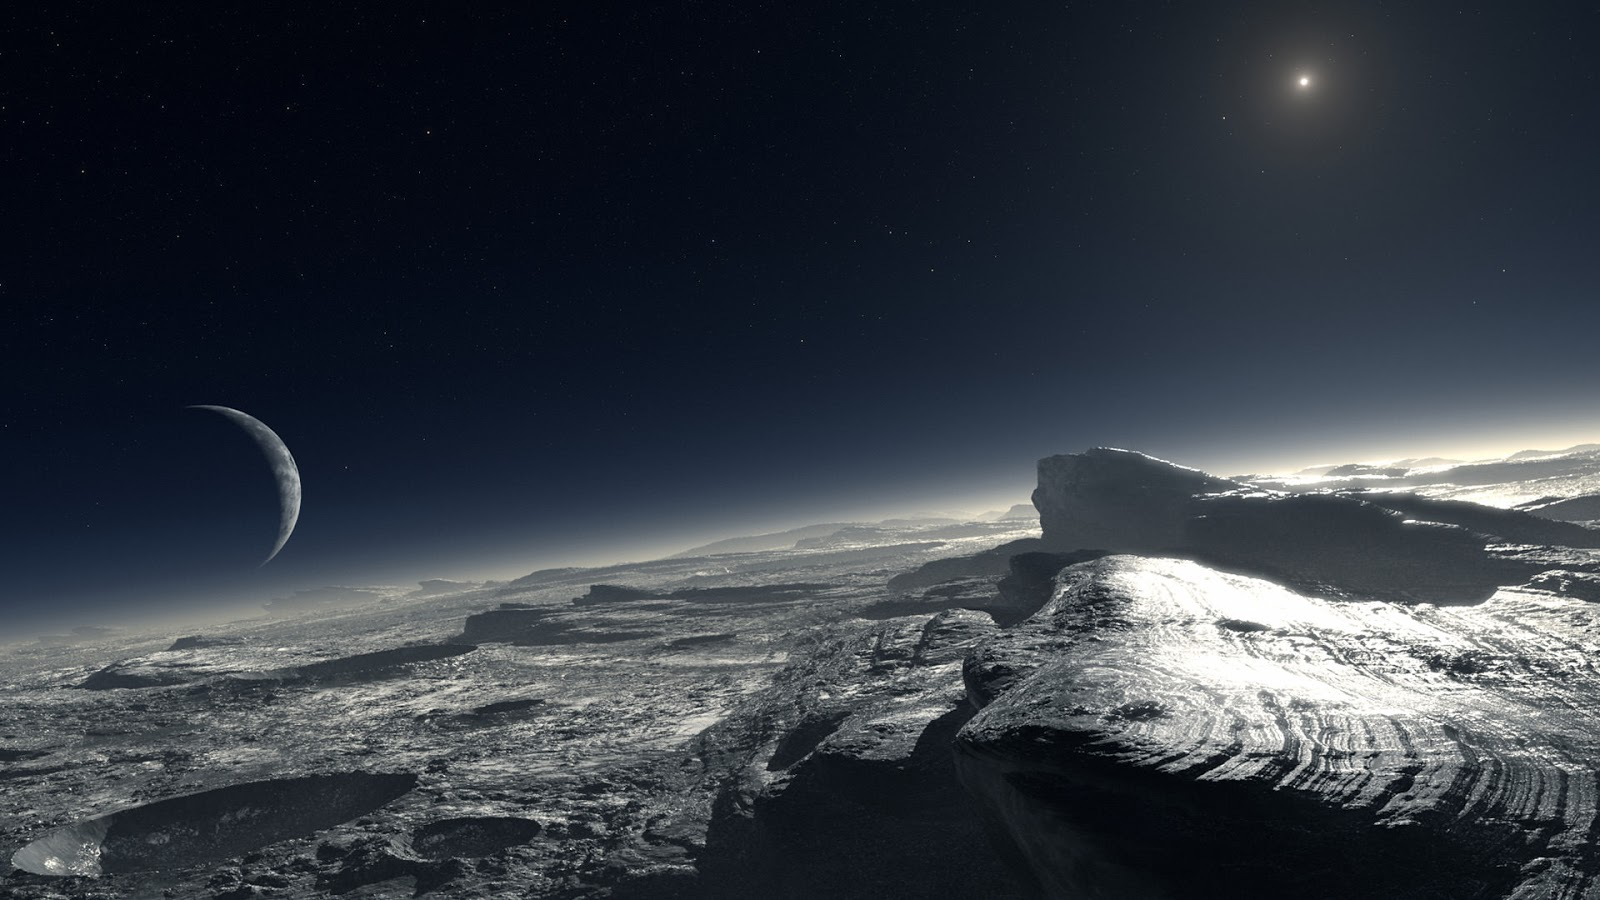 The Most One Can Breathe With Aliens On Pluto